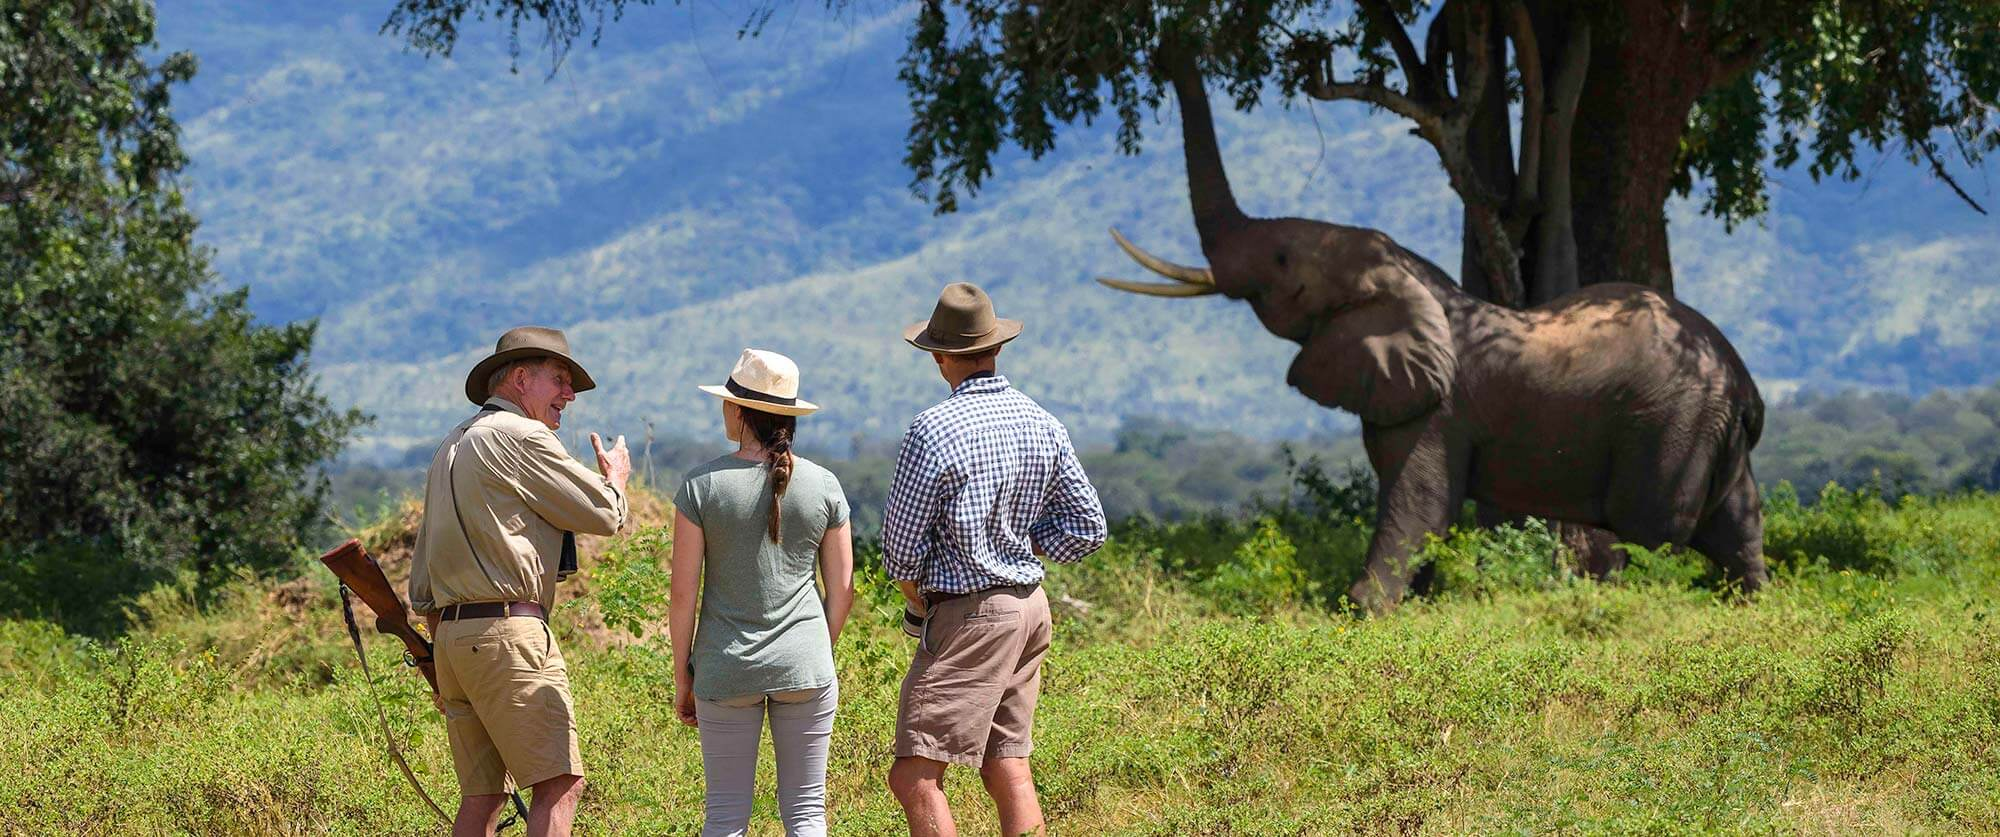 Elephant on Walking Safari - John's Camp Zimbabwe - South Luangwa, Mana Pools, and Victoria Falls Adventure Package